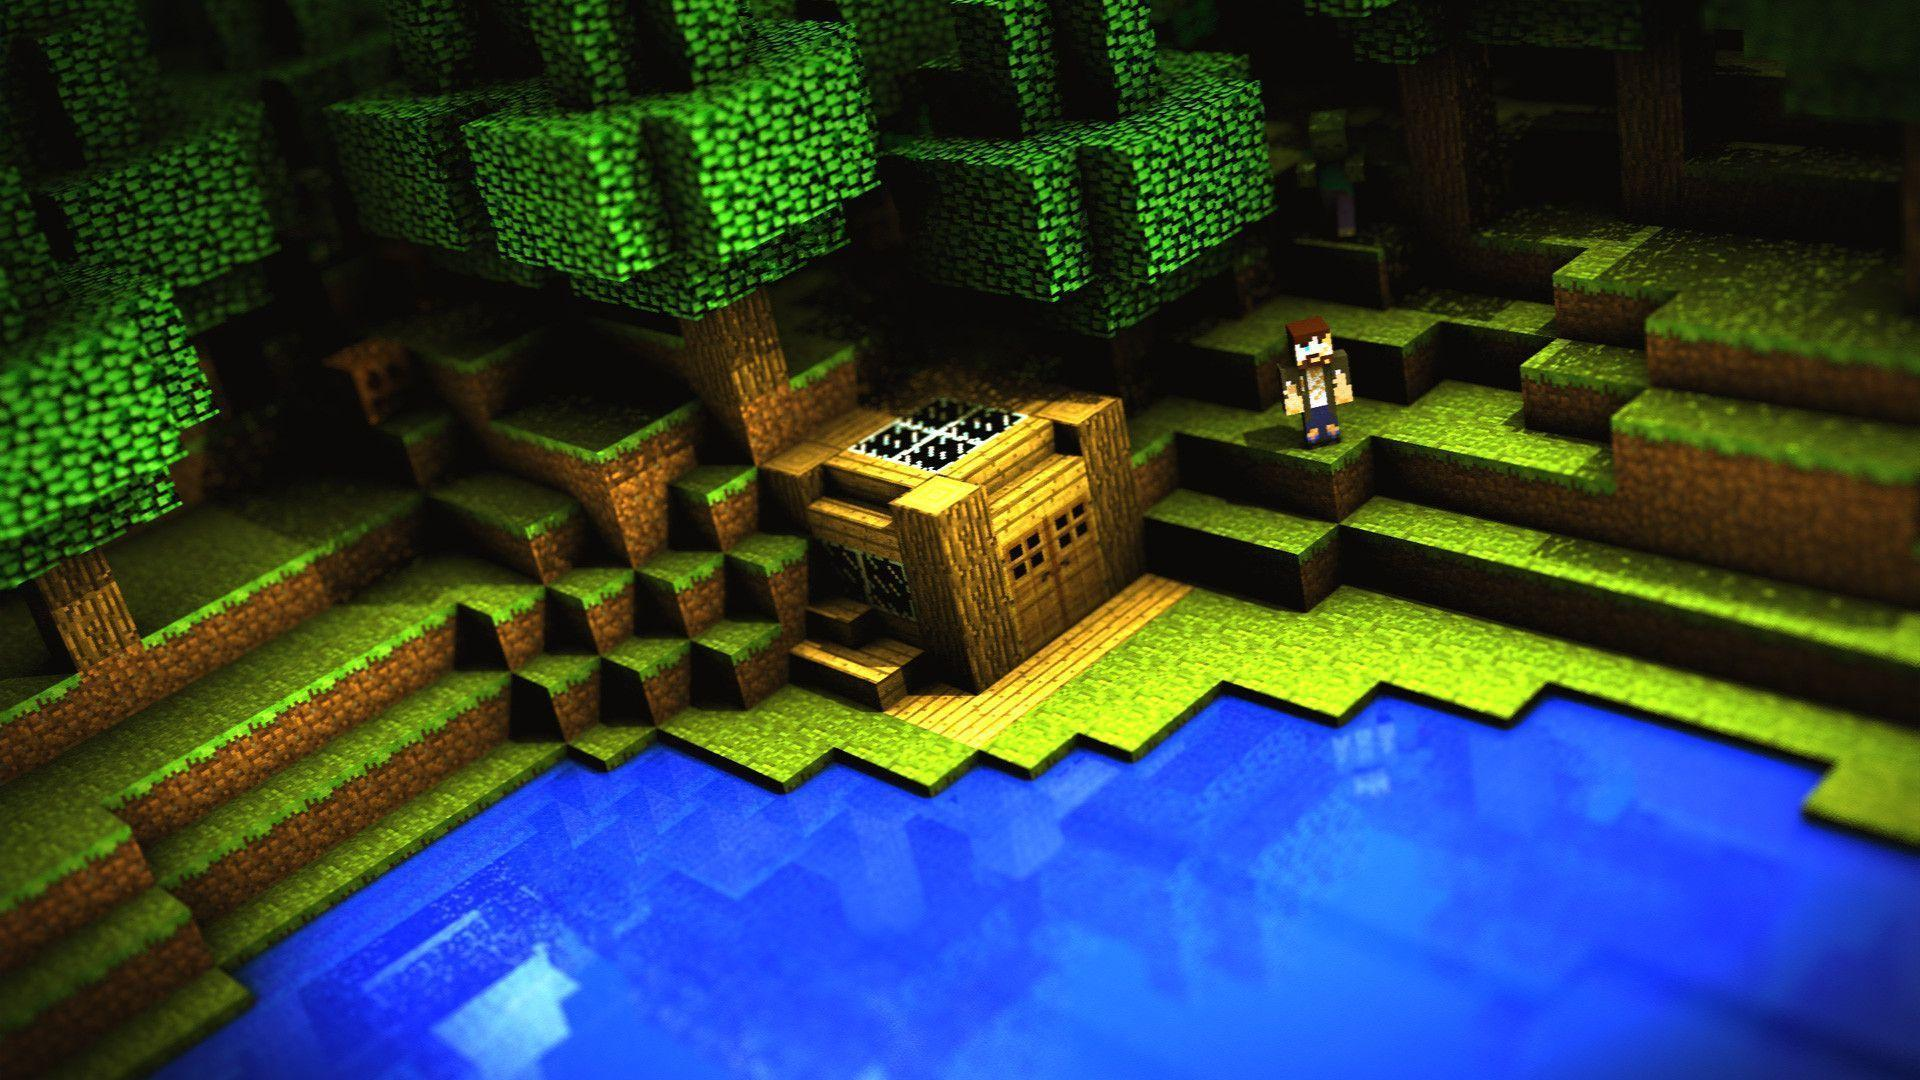 Hd Wallpapers Minecraft Hd Backgrounds Wallpapers 18 HD Wallpapers